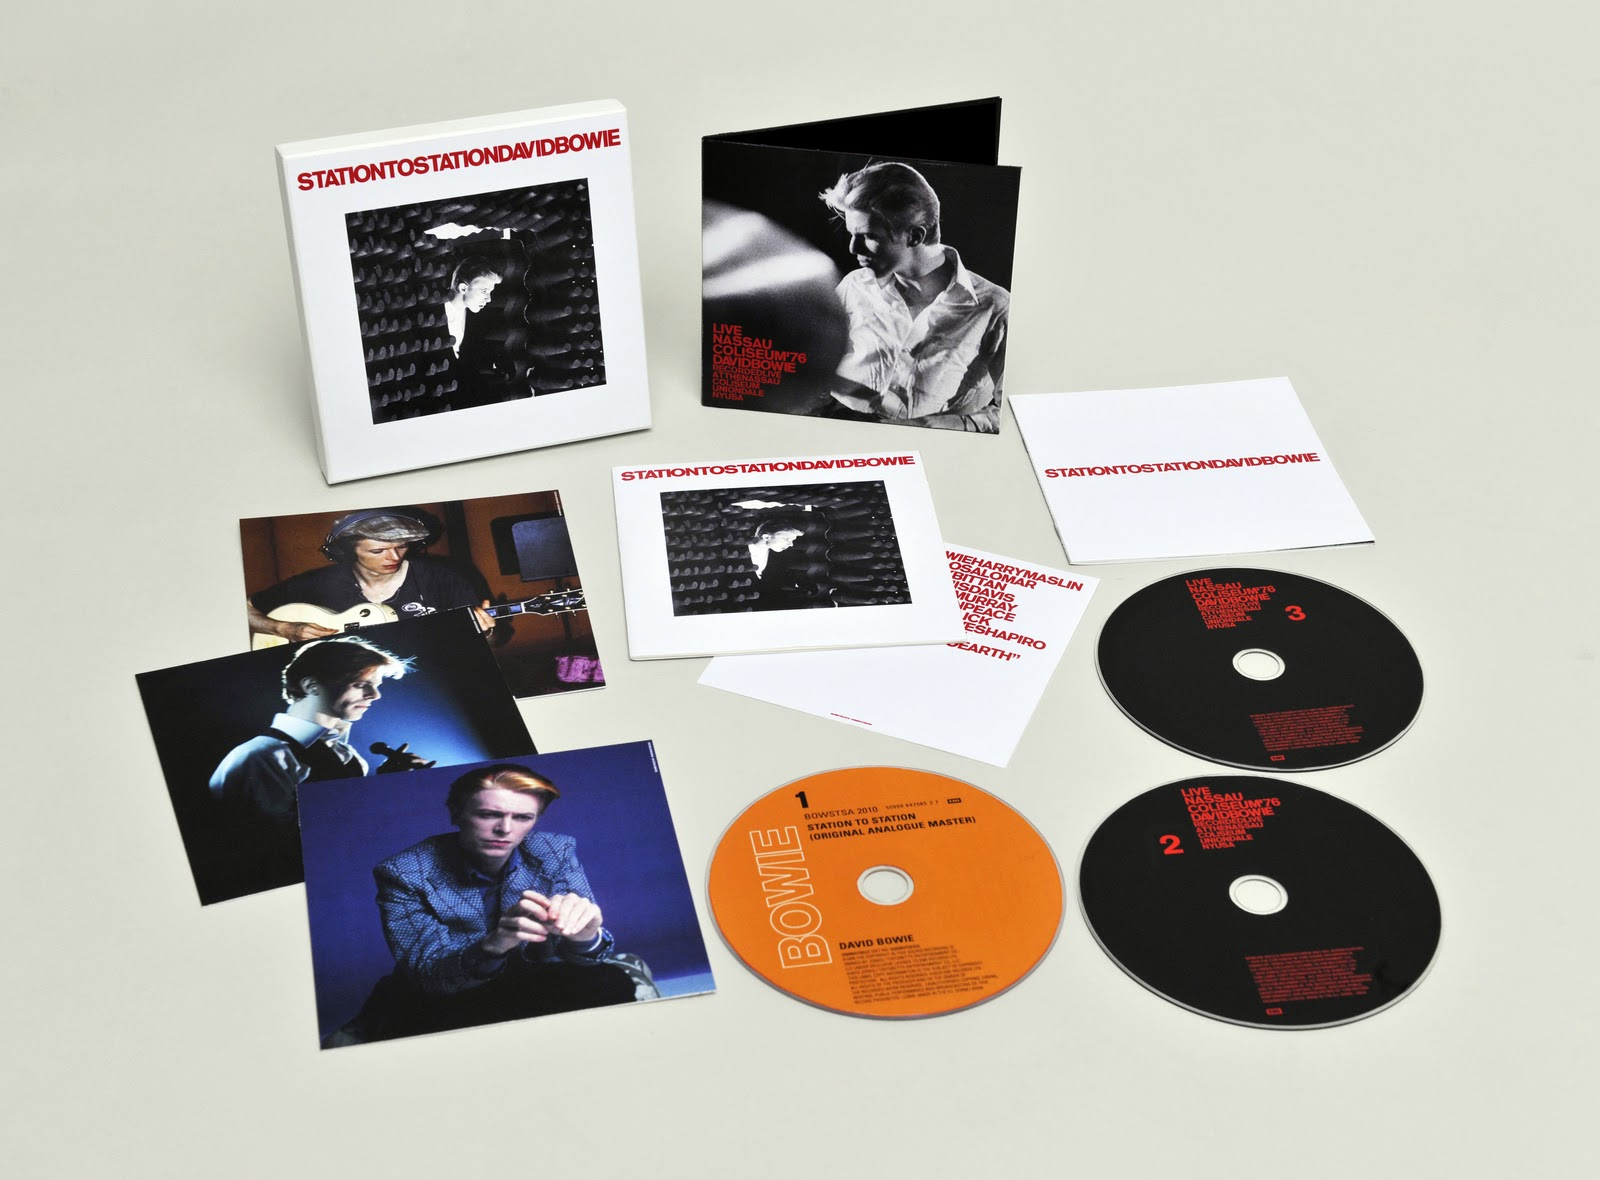 David bowie station to station deluxe edition rar.